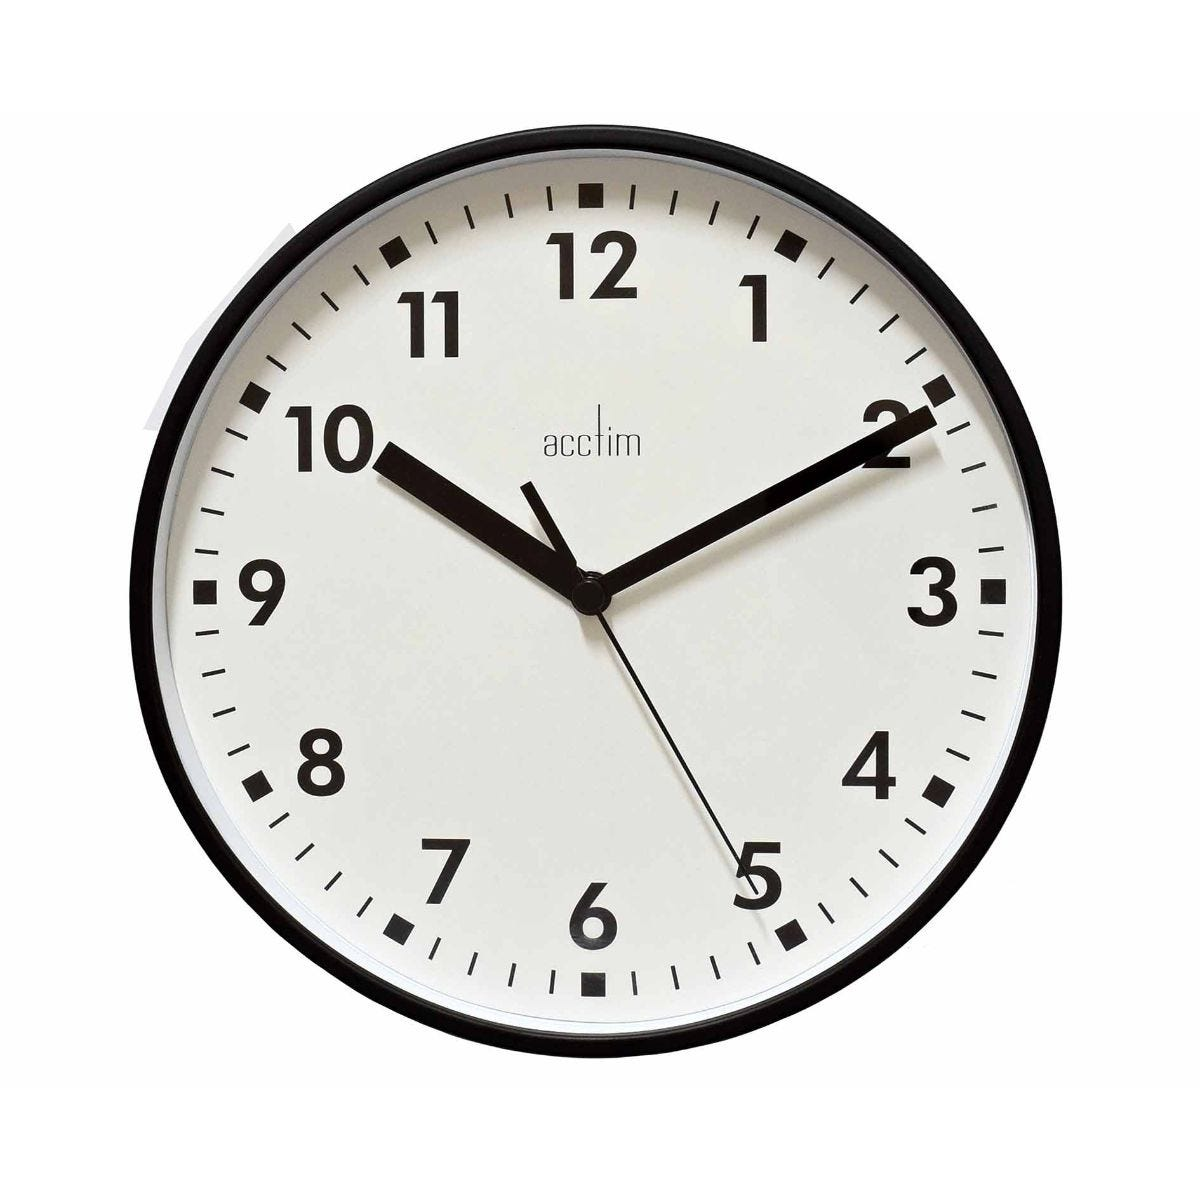 Image of Acctim Wickford Wall Clock, Coal